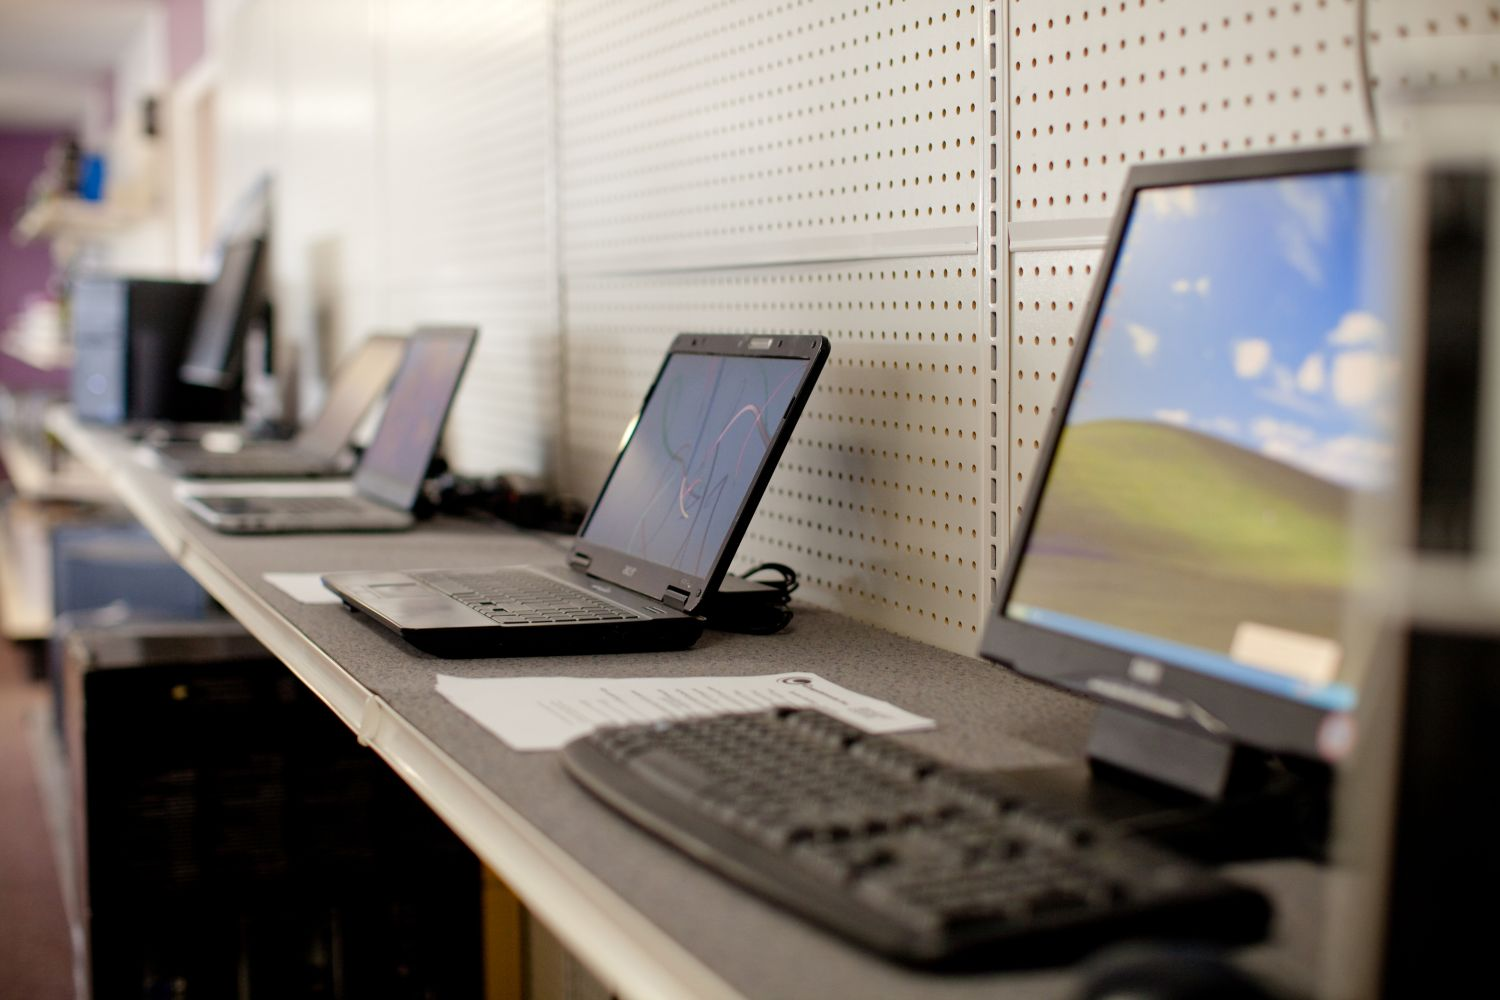 A selection of the laptops we offer in our store